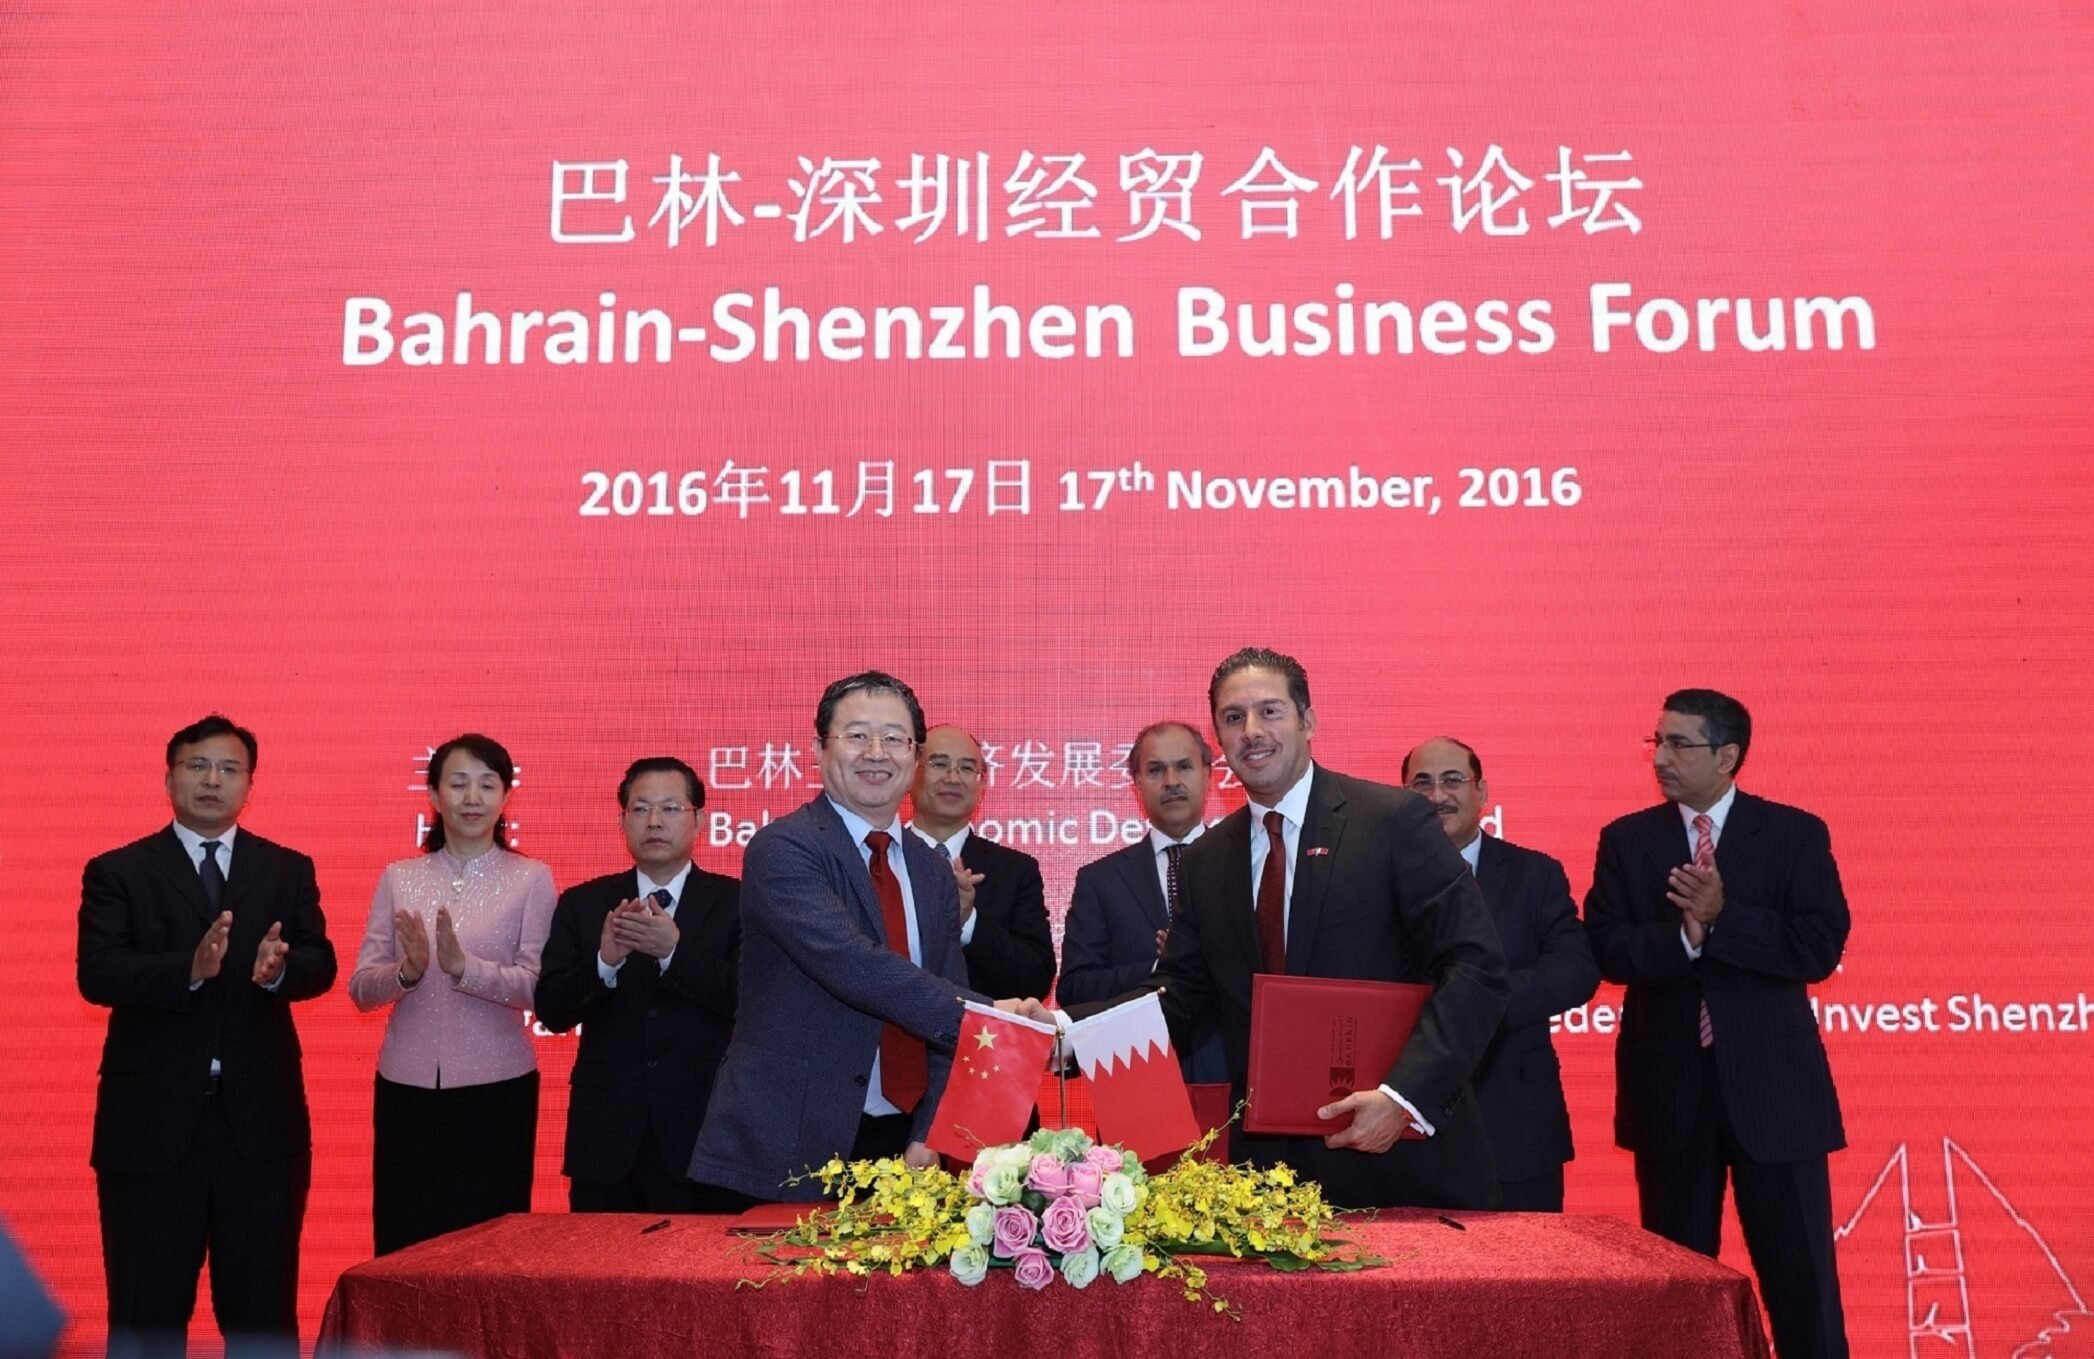 Bahrain and Shenzhen businesses build stronger ties at forum